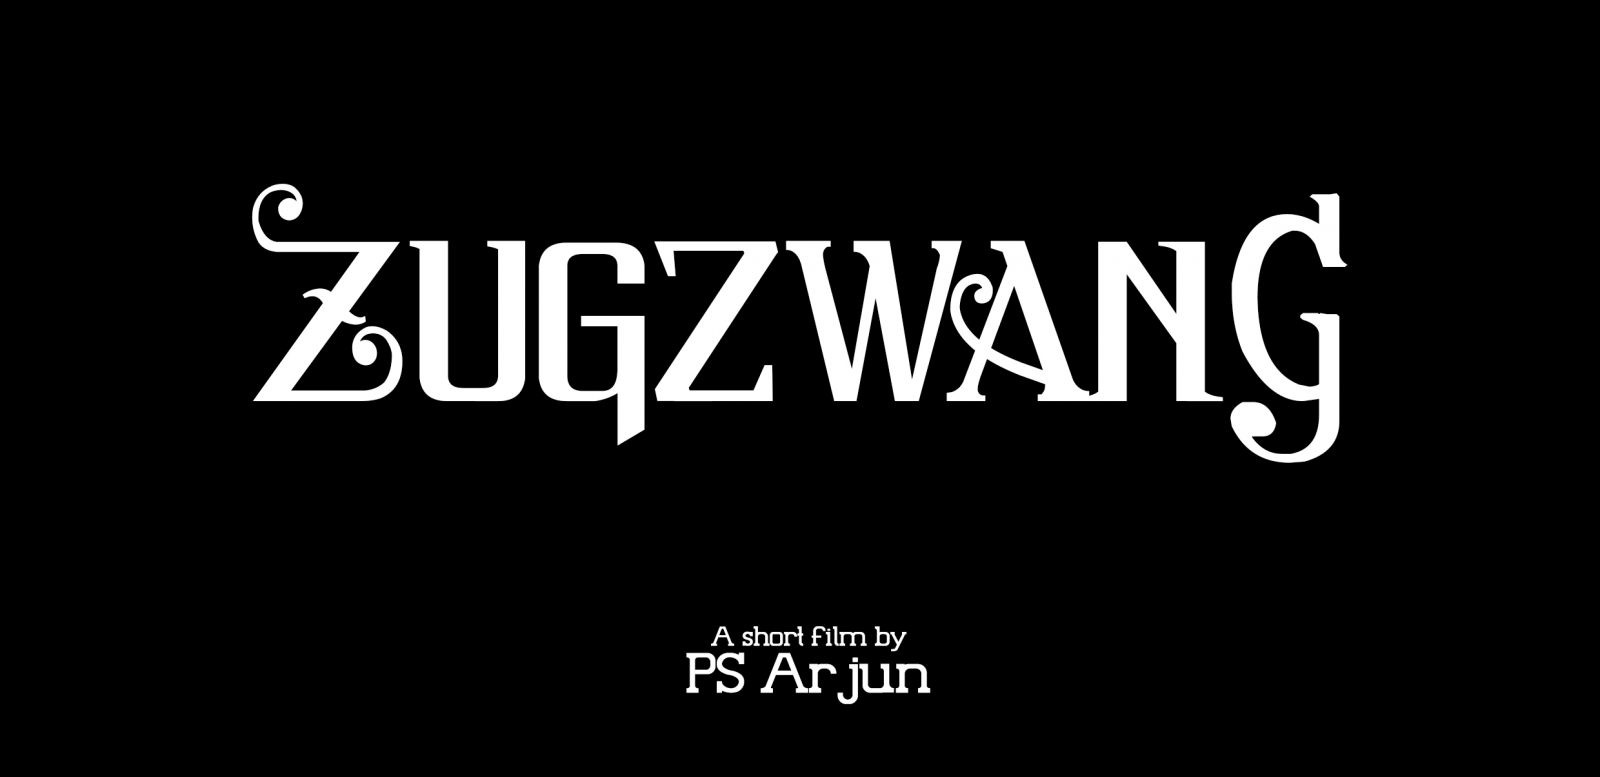 PS Arjun's Zugzwang Short Film